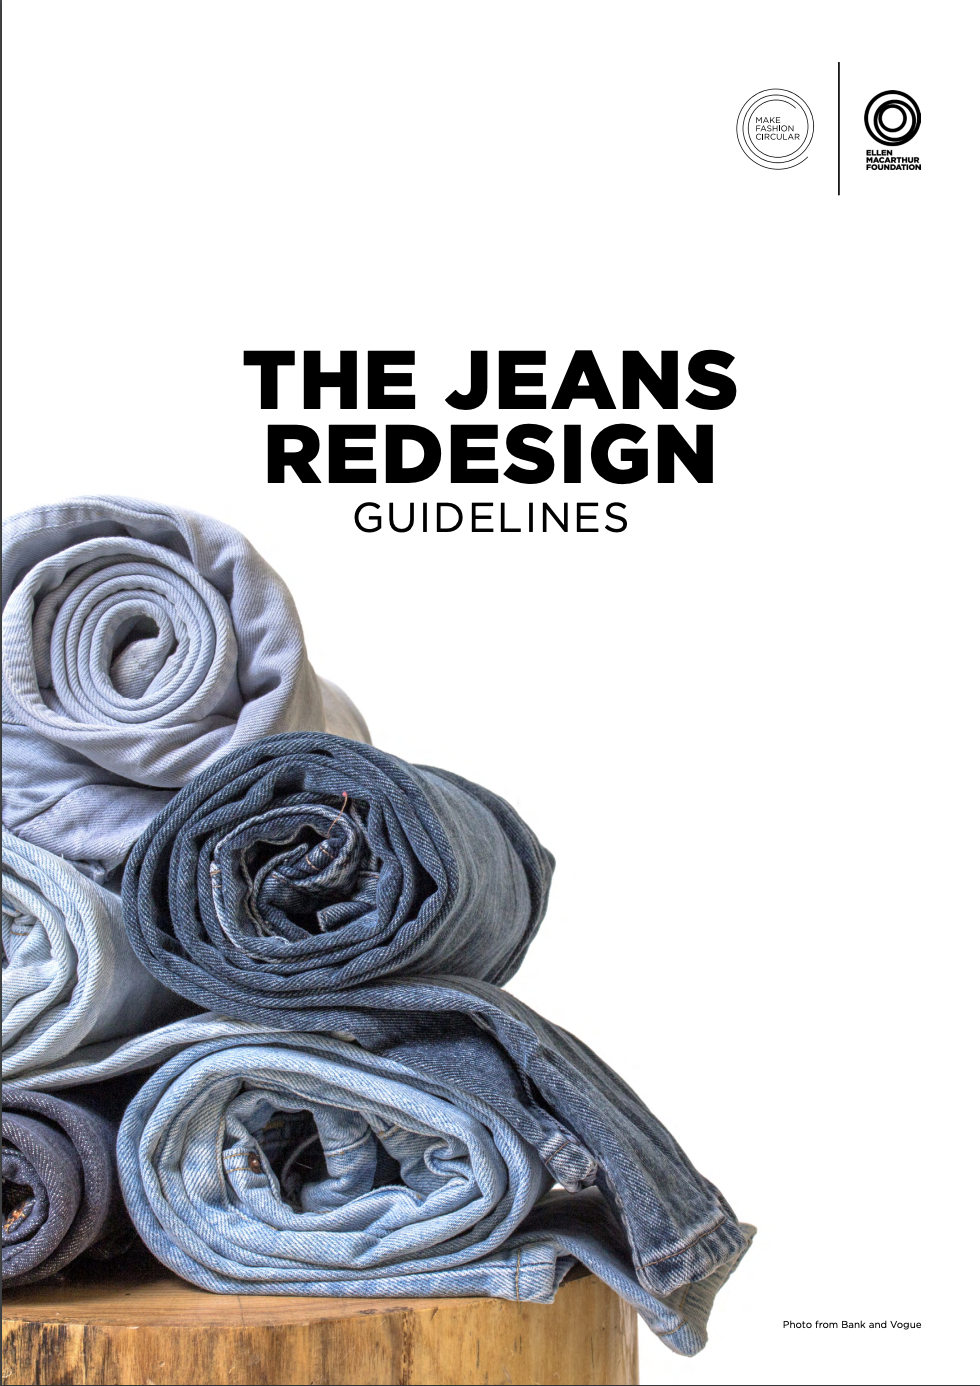 The Jeans Redesign guidelines